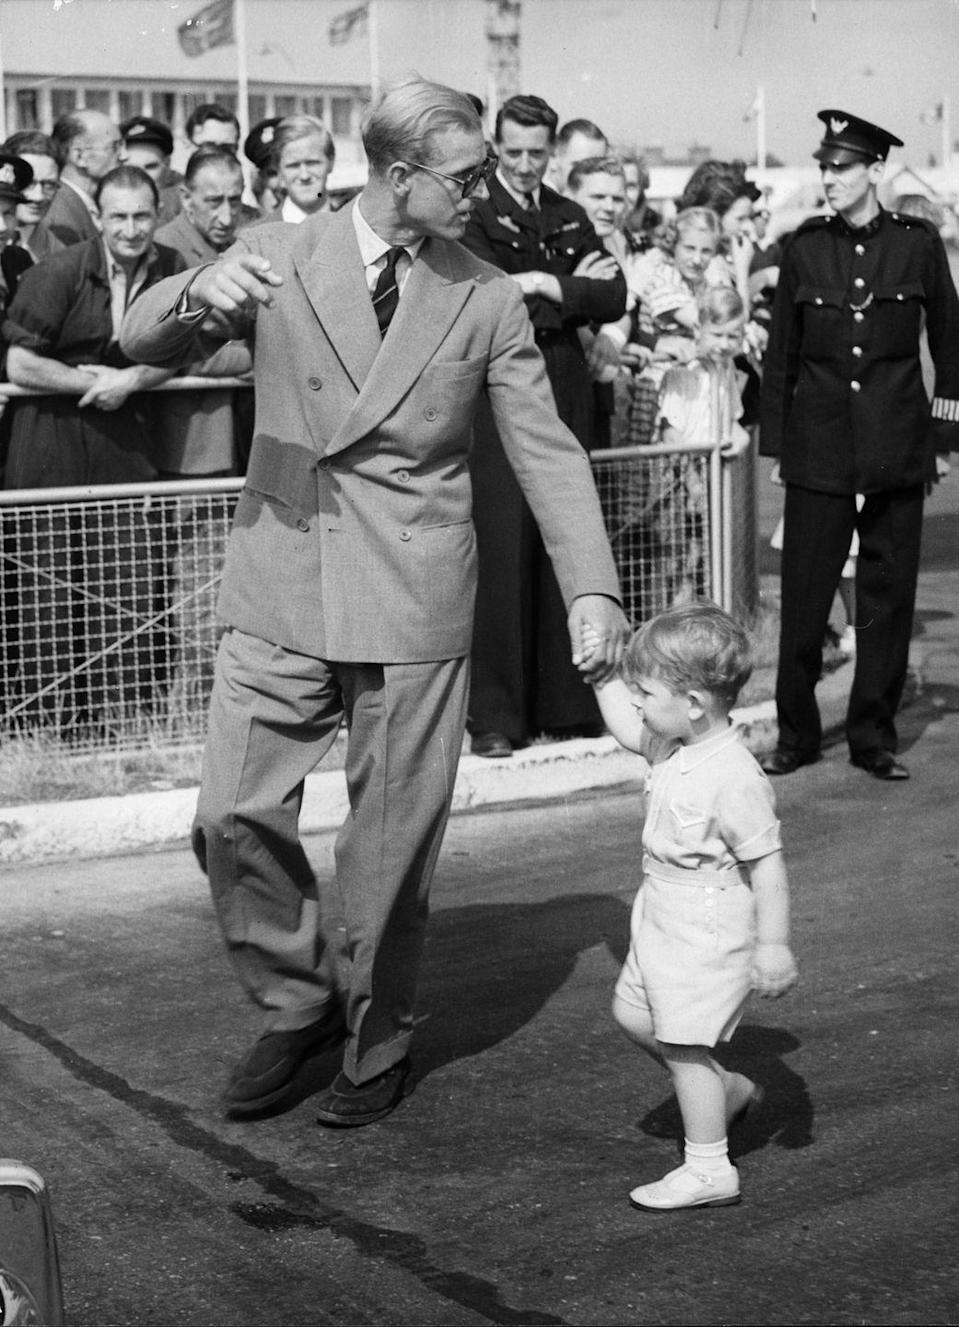 """<p>Prince Philip takes a young <a href=""""https://www.goodhousekeeping.com/uk/news/a25084414/young-prince-charles-queen-video-footage/"""" rel=""""nofollow noopener"""" target=""""_blank"""" data-ylk=""""slk:Prince Charles"""" class=""""link rapid-noclick-resp"""">Prince Charles</a> by the hand upon their arrival at London Airport from Malta, where the Duke relinquished command of the Royal Navy Frigate, HMS Magpie.</p>"""